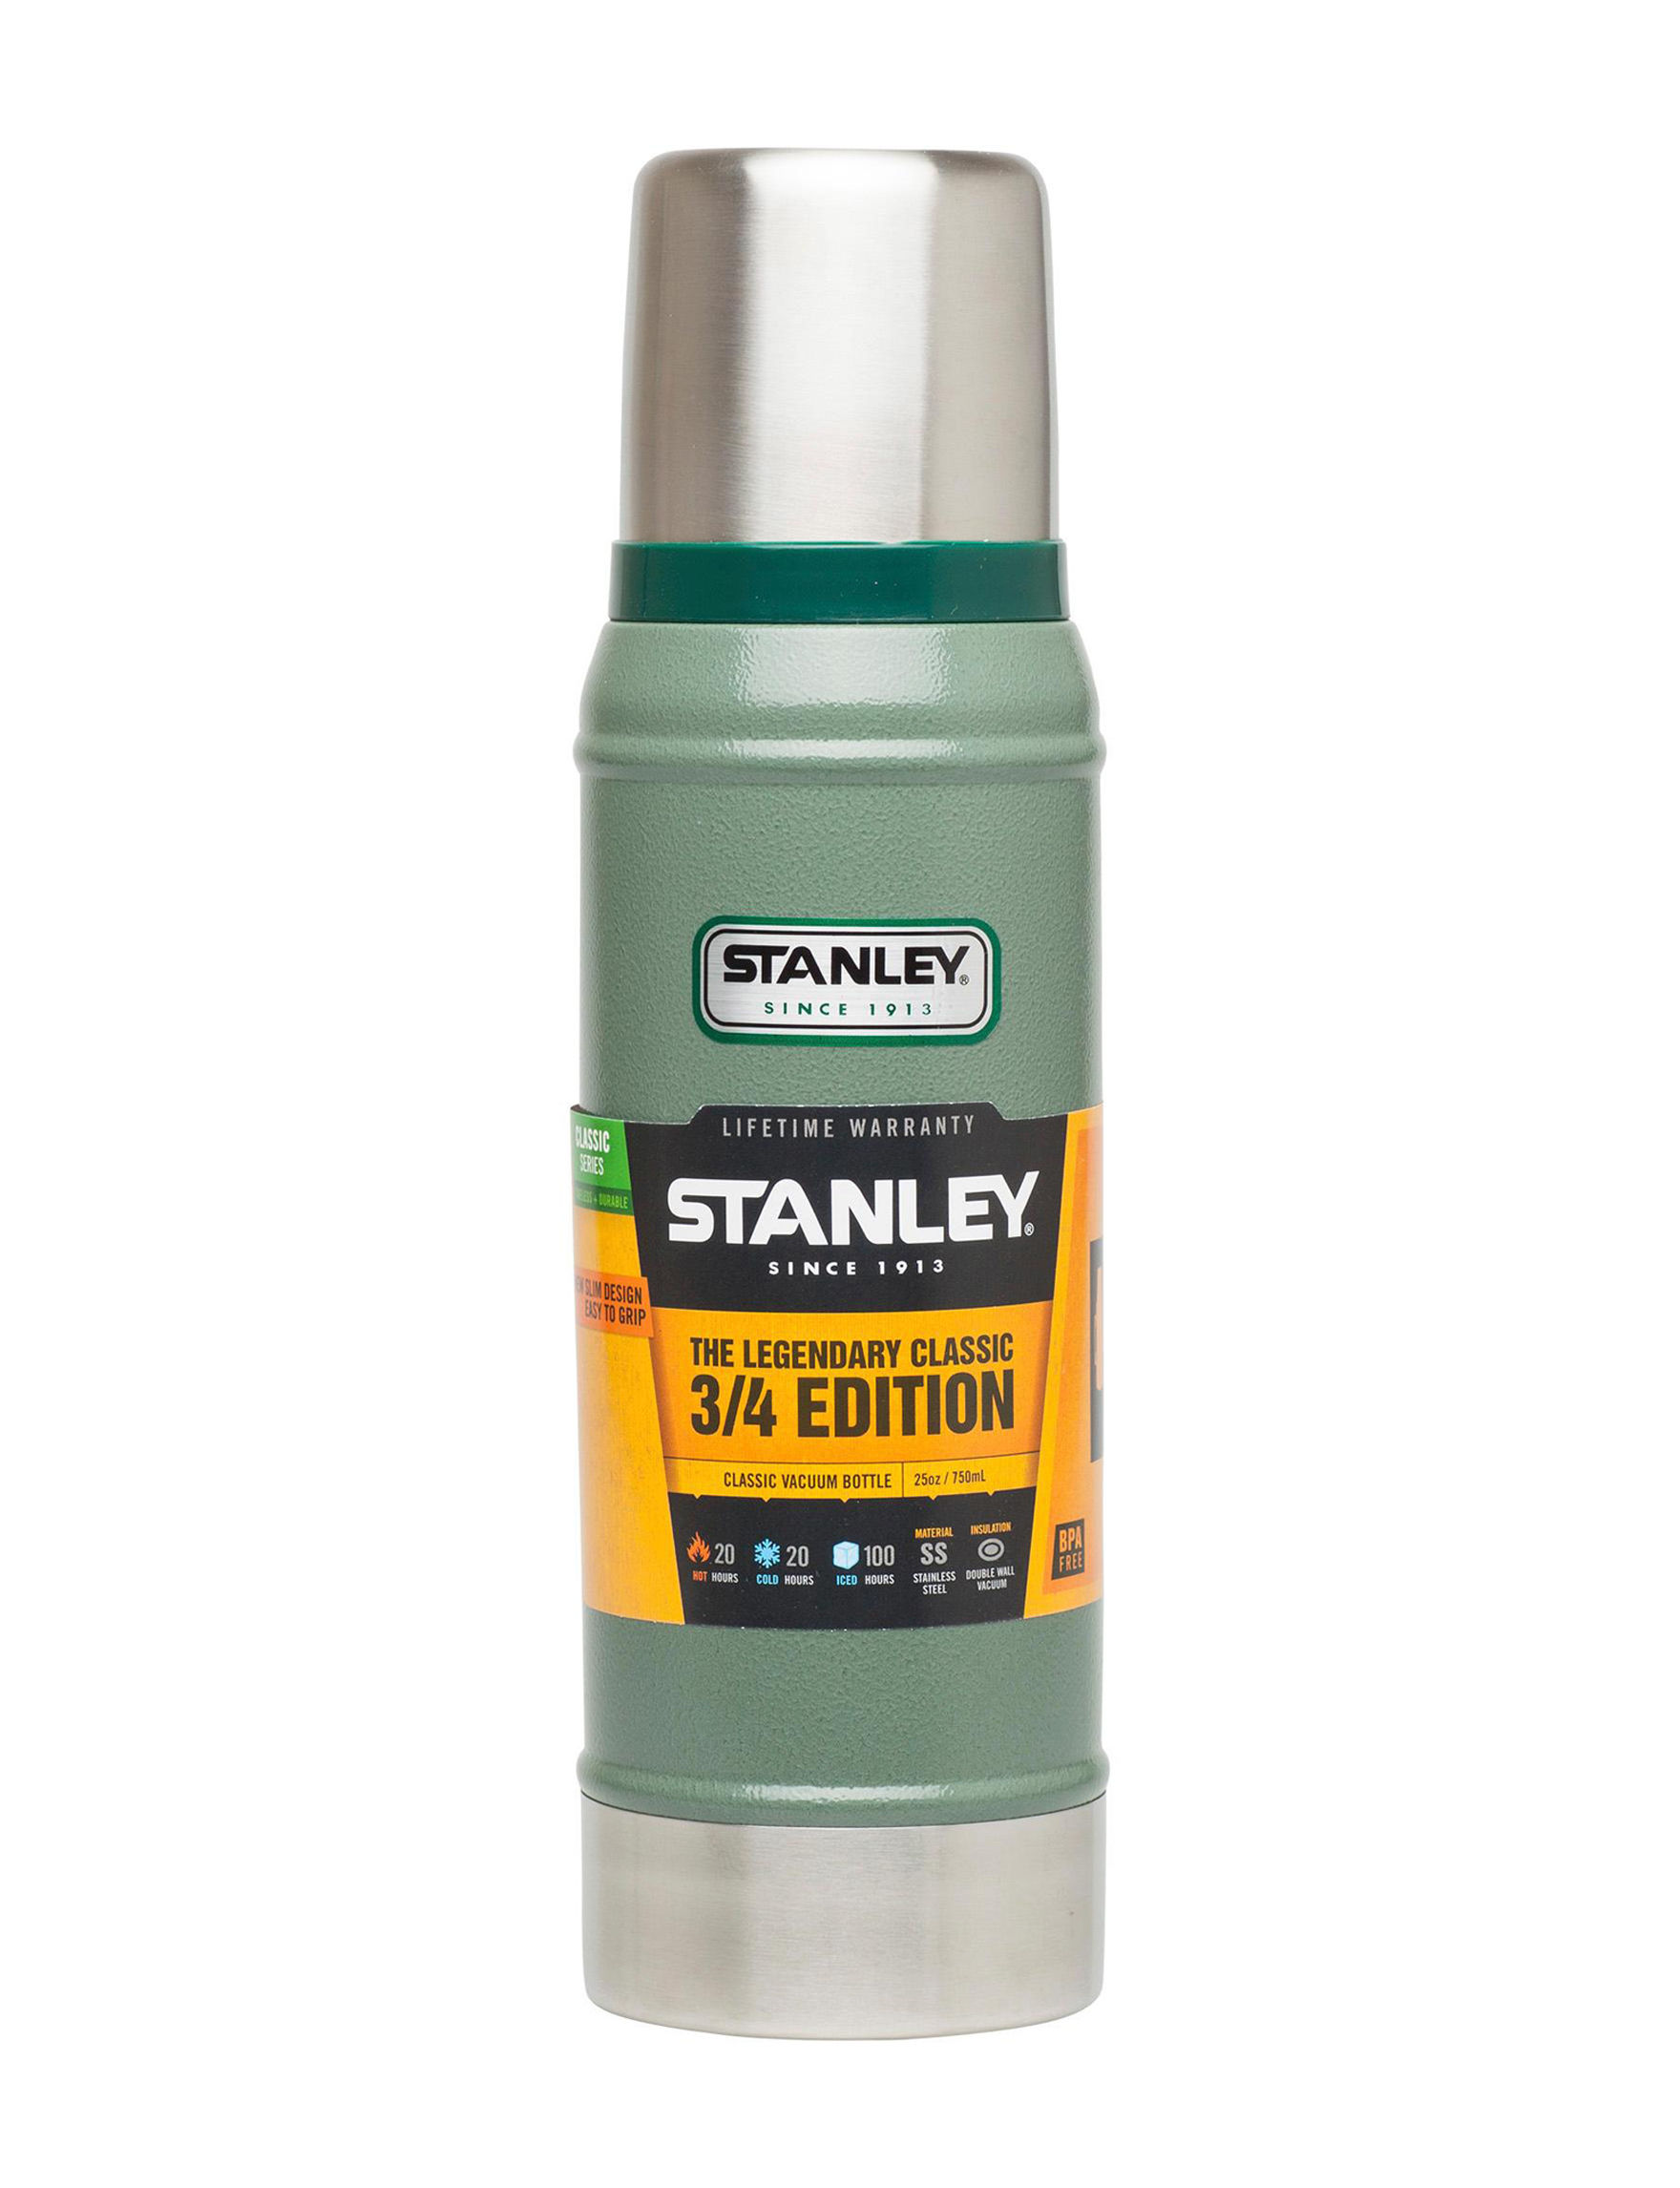 Stanley Green Tumblers Camping & Outdoor Gear Drinkware